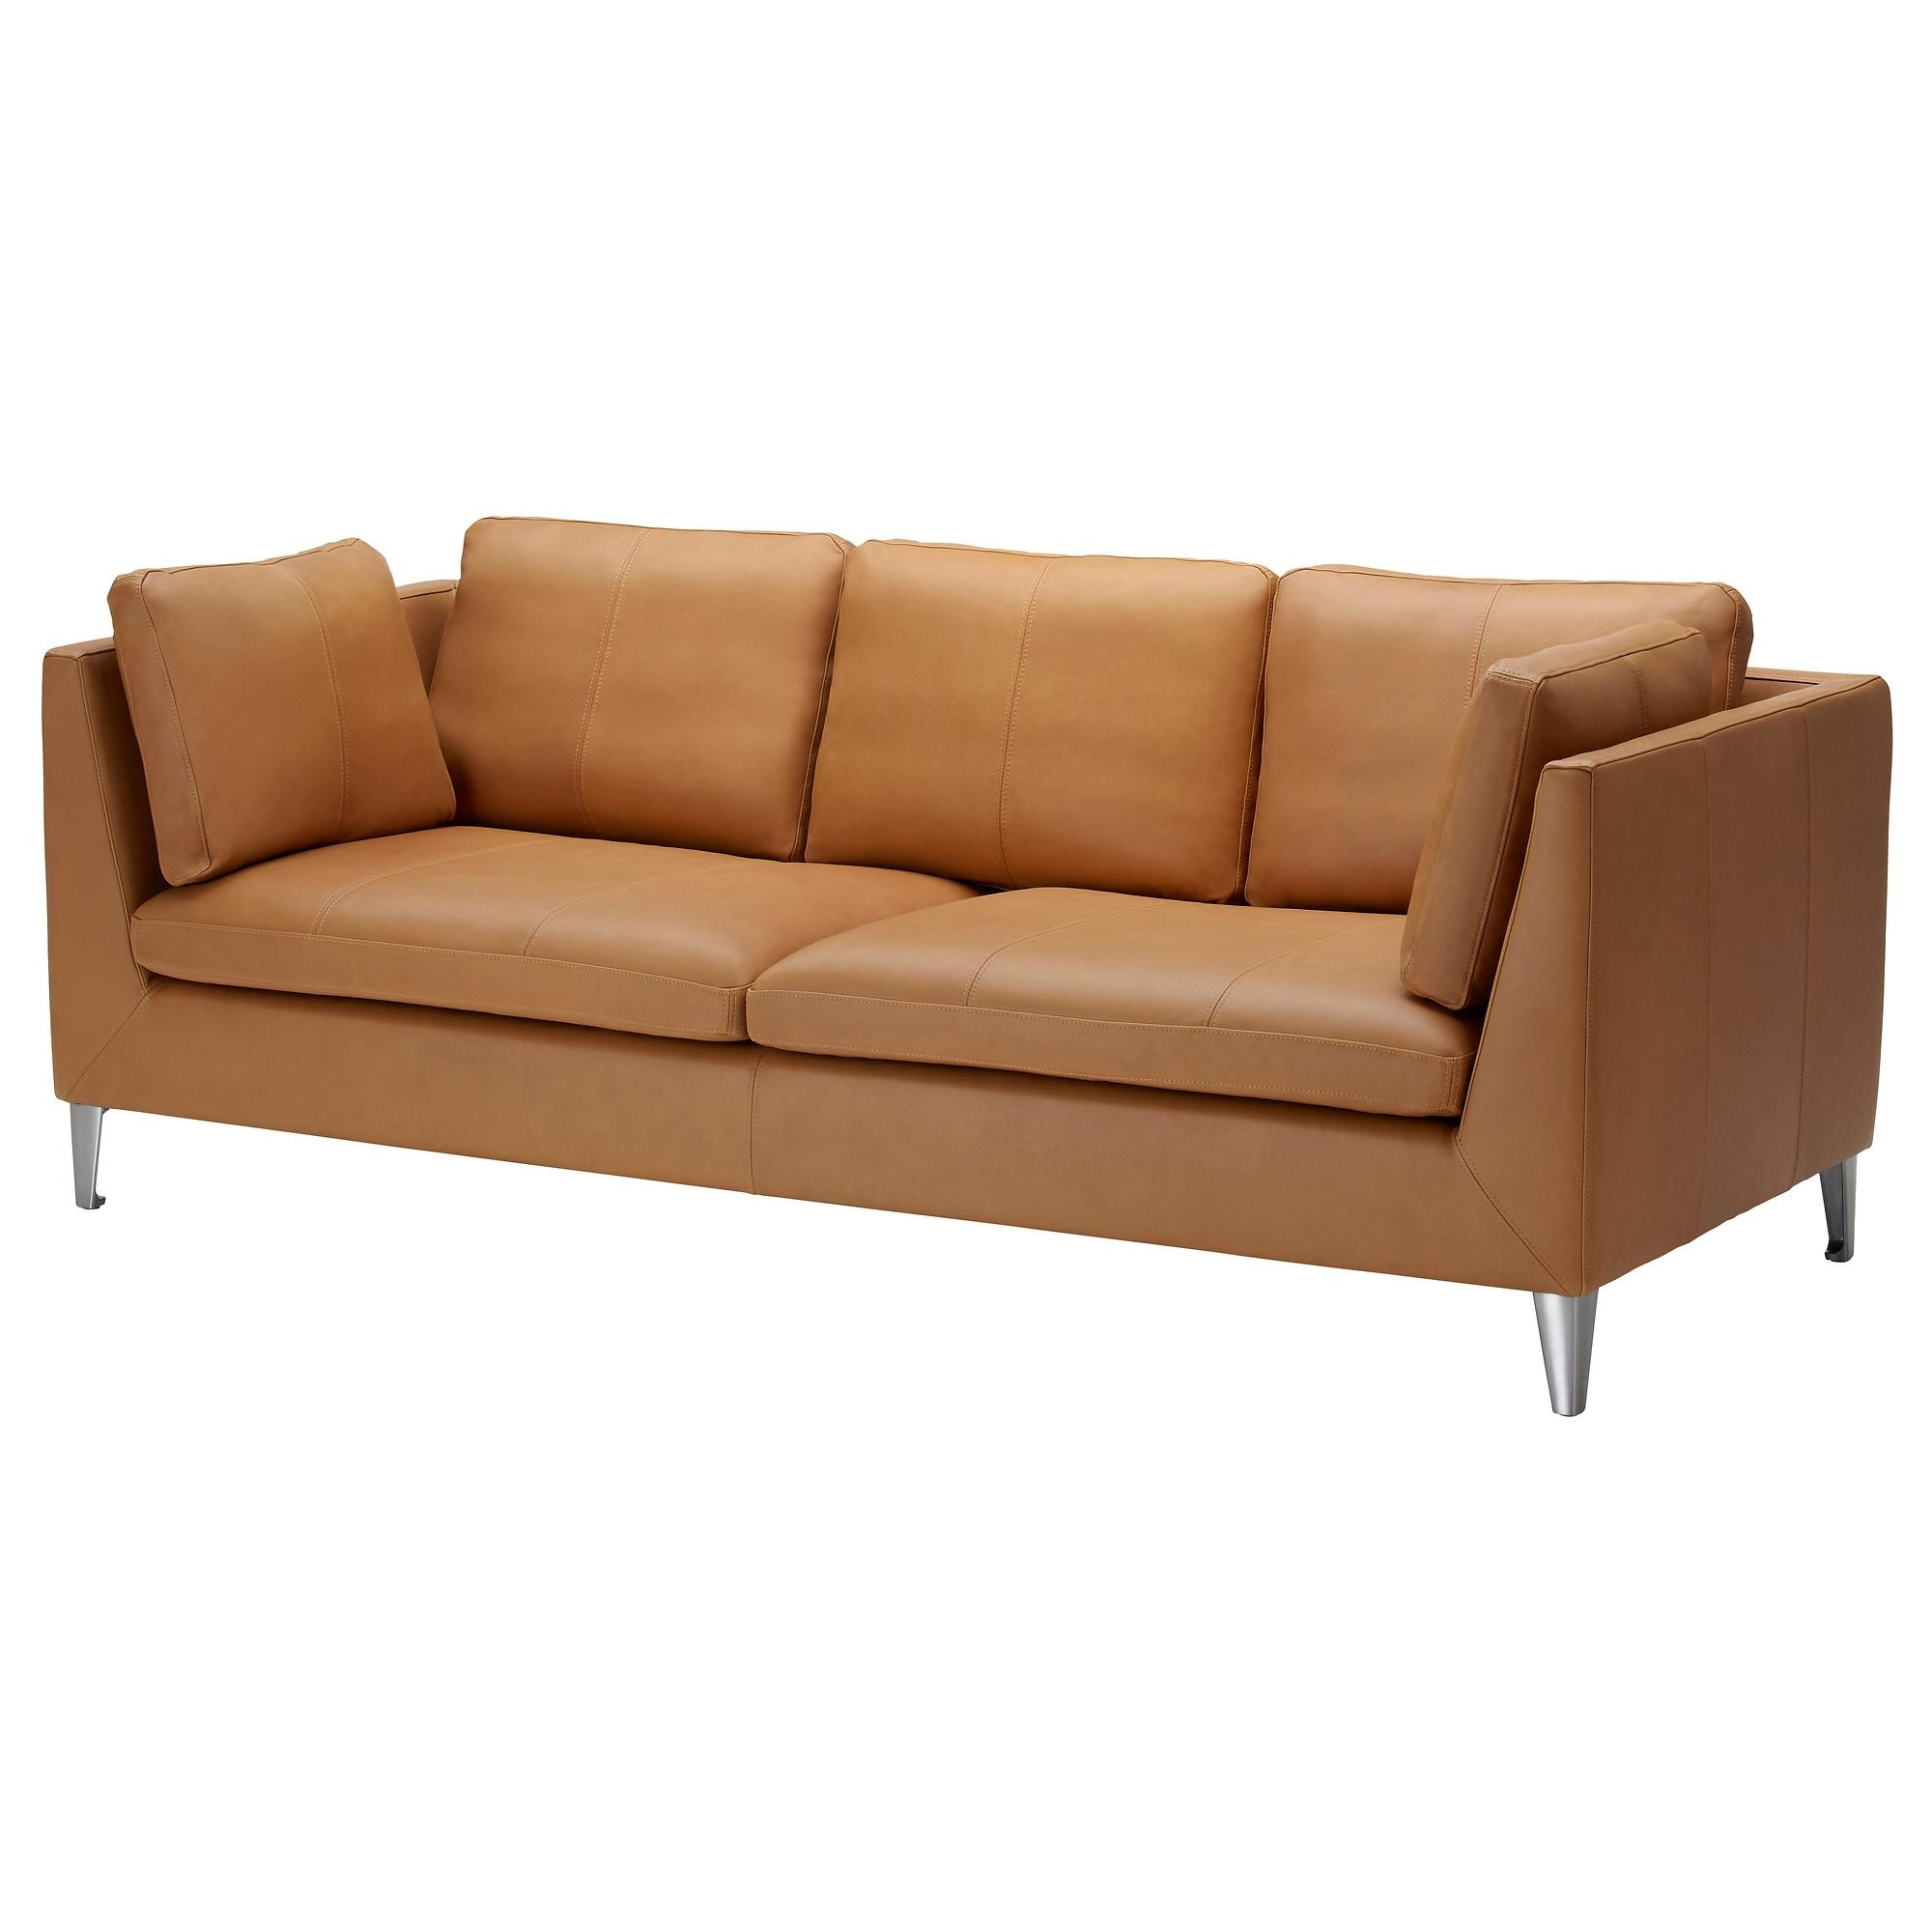 All Sofas – Ikea For Sofas (Image 1 of 20)